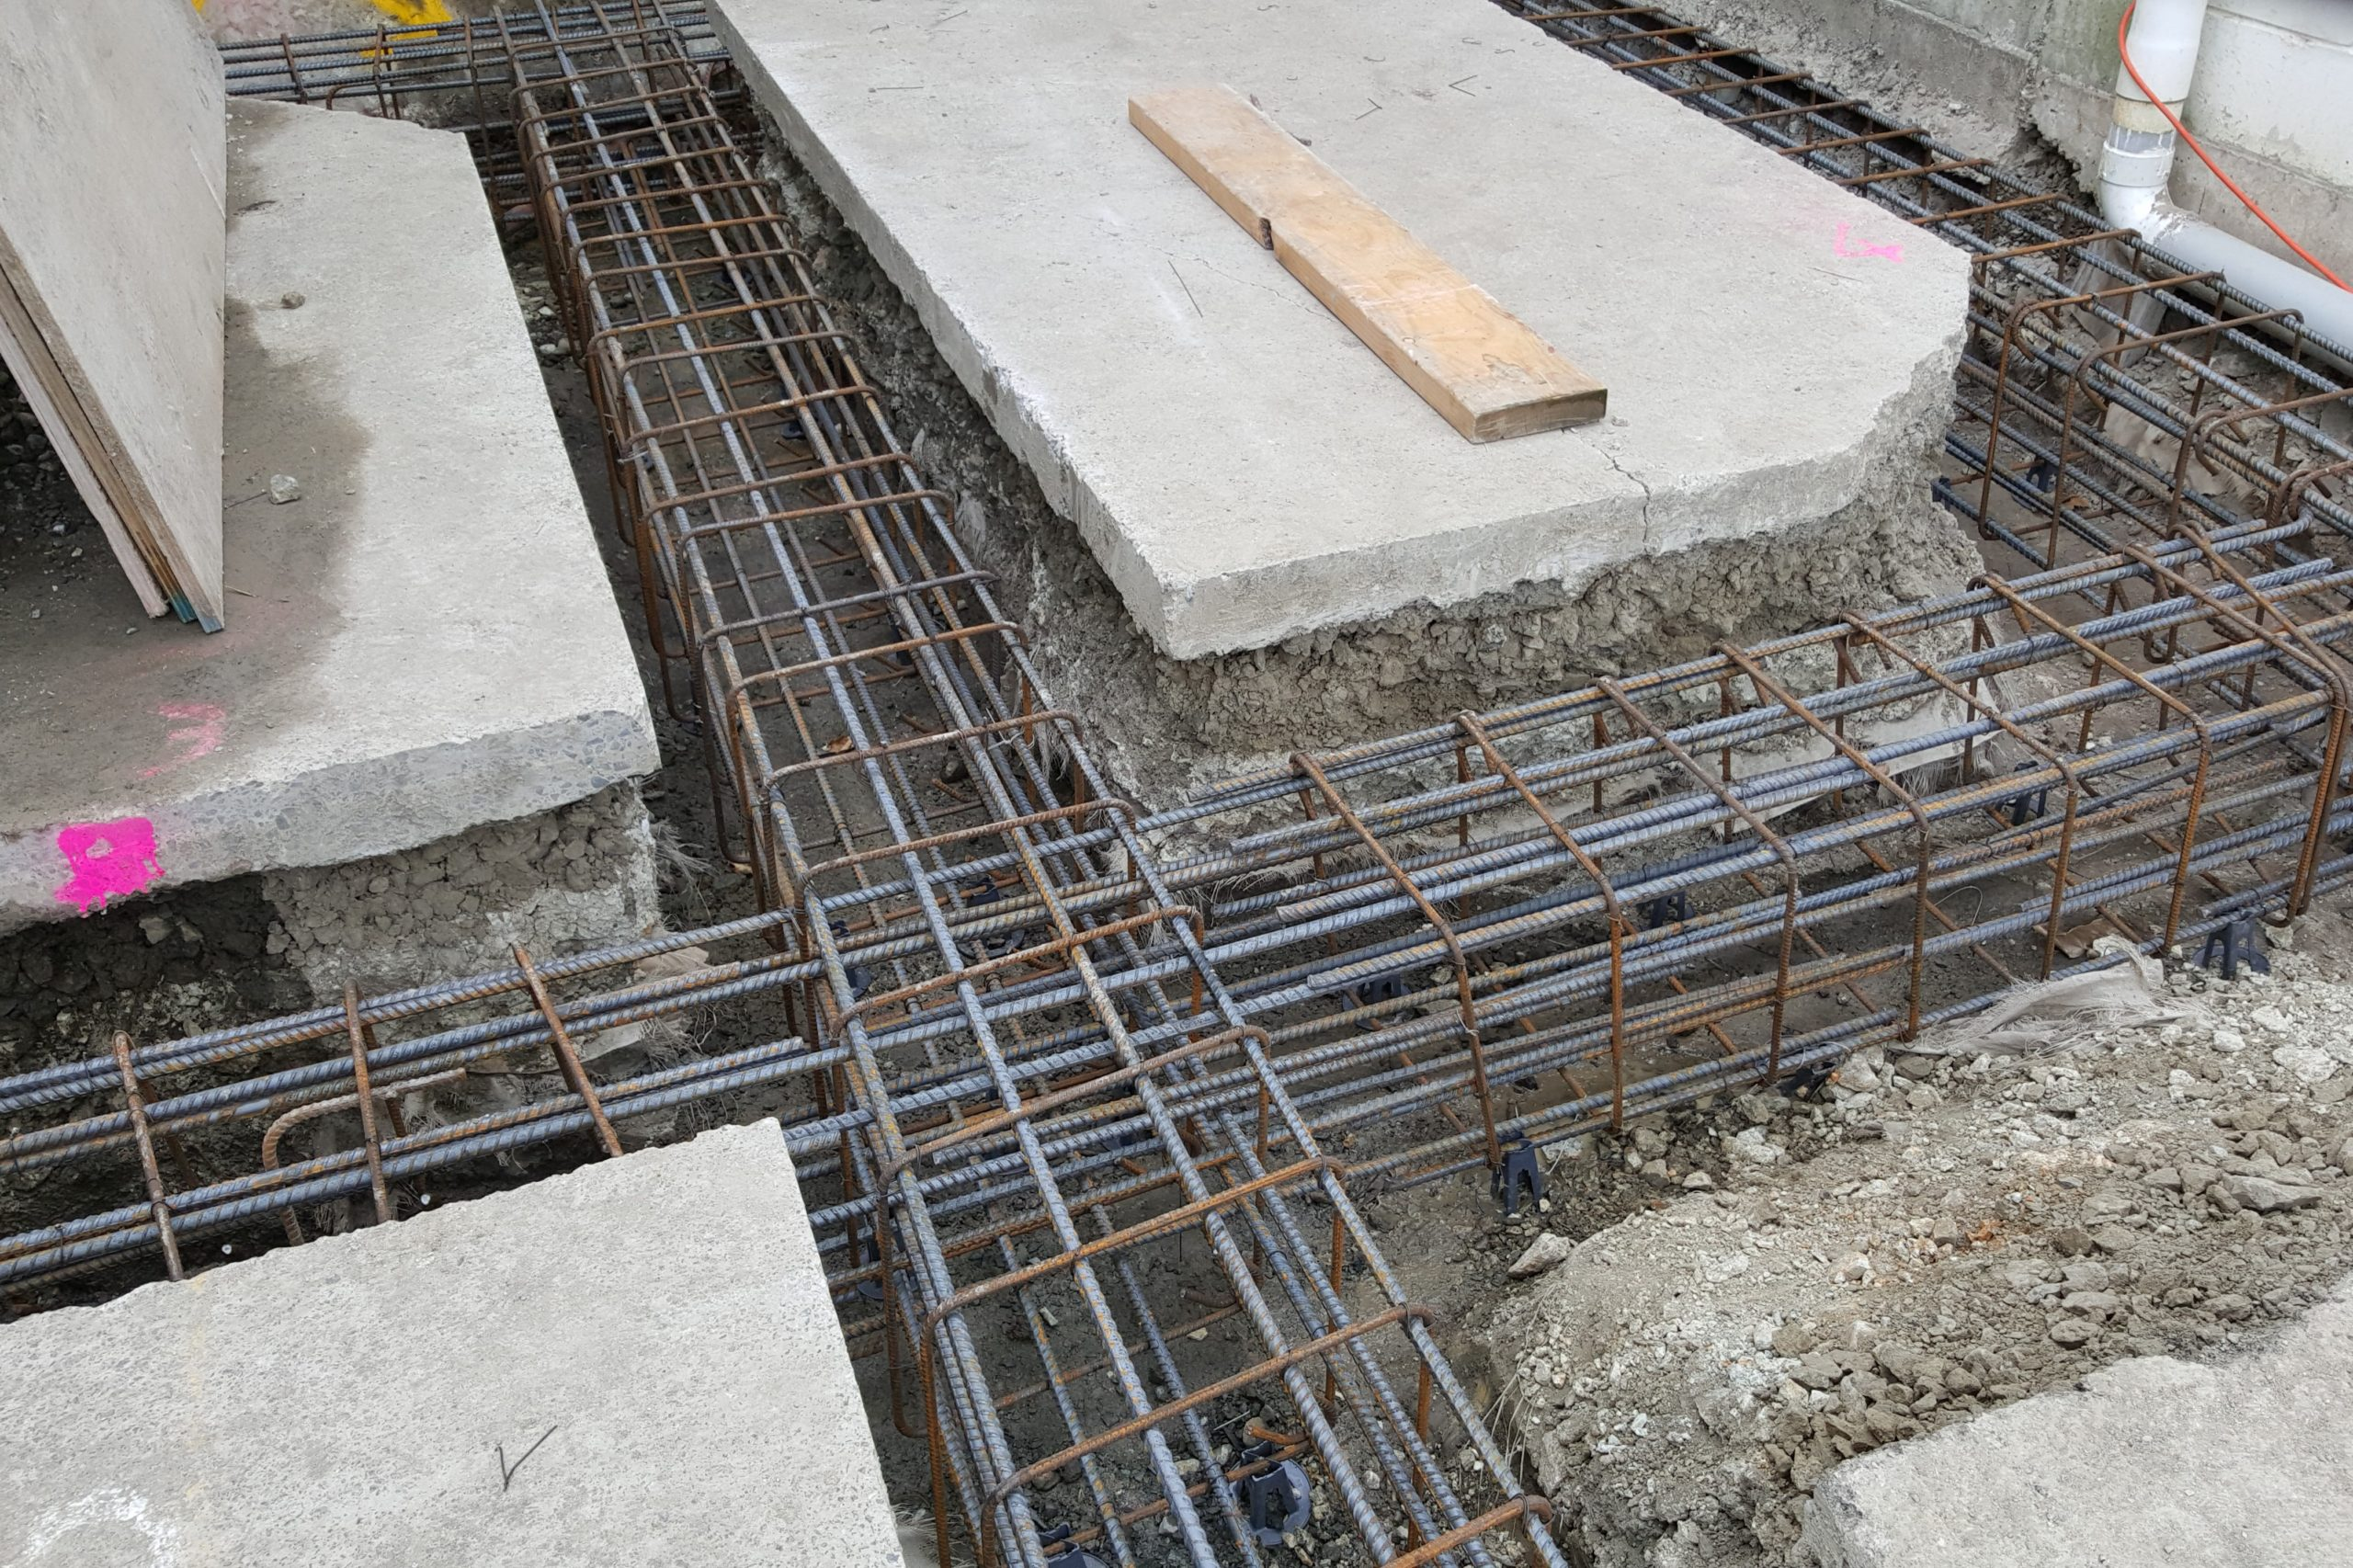 reinforcing reo foundations